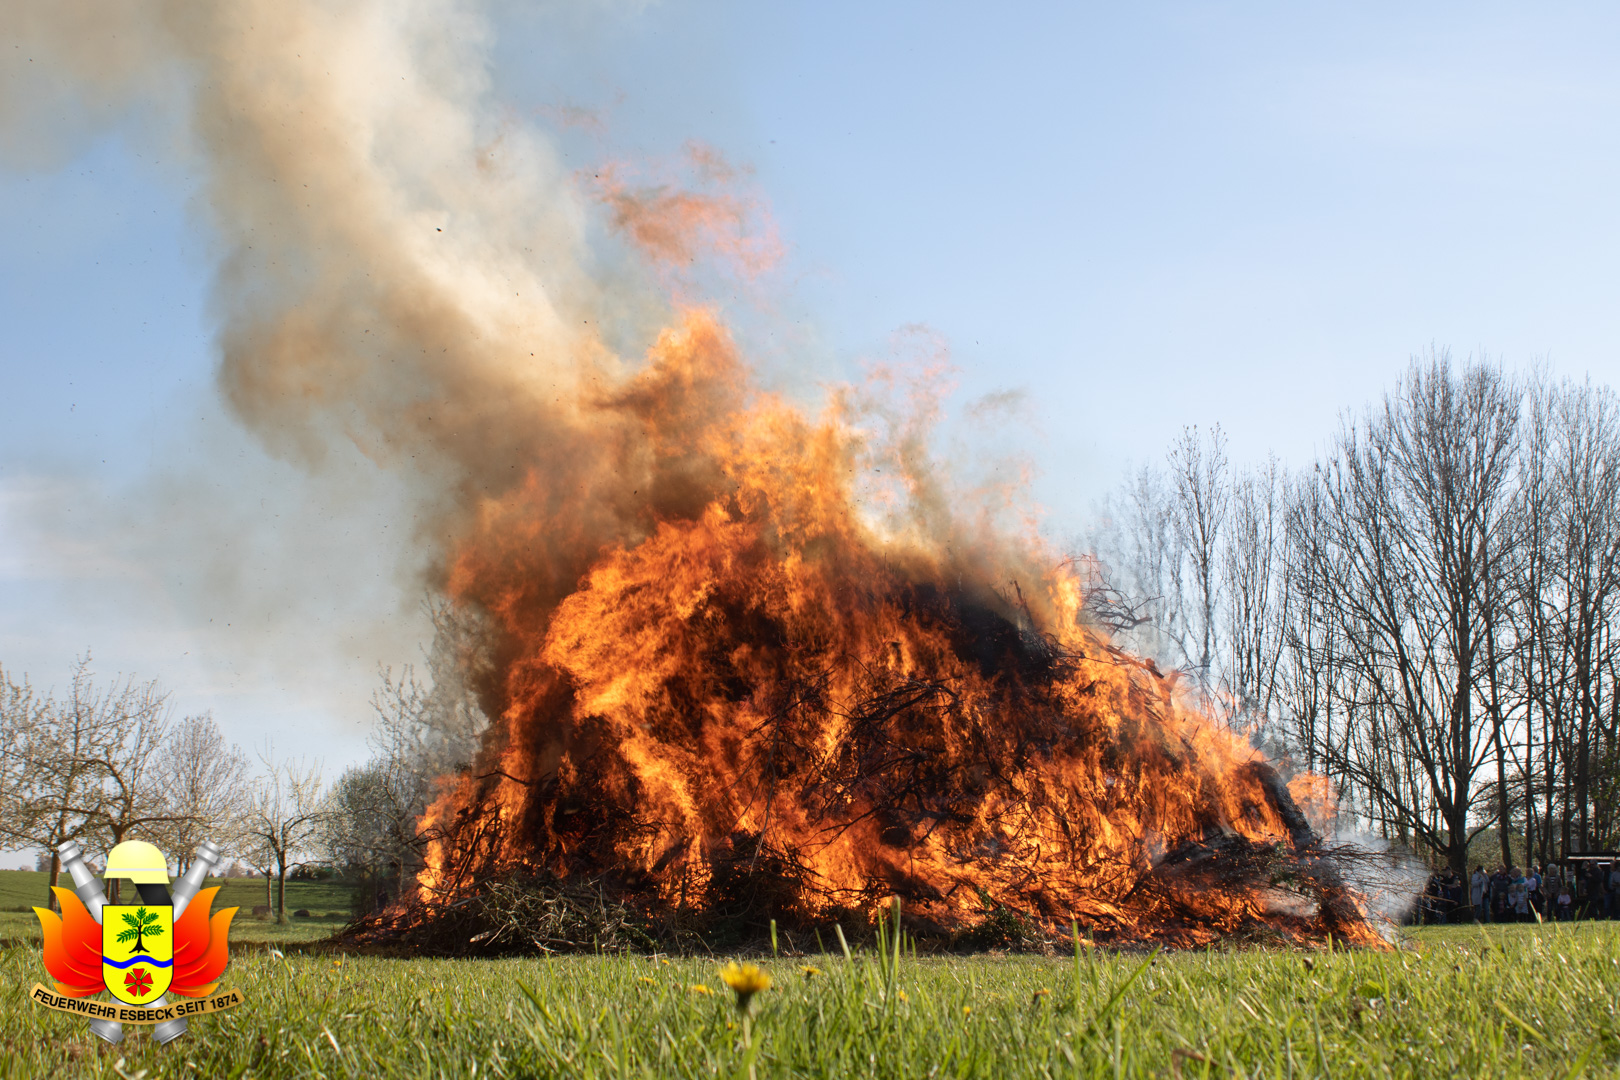 2019 04 20 Osterfeuer 2019 8